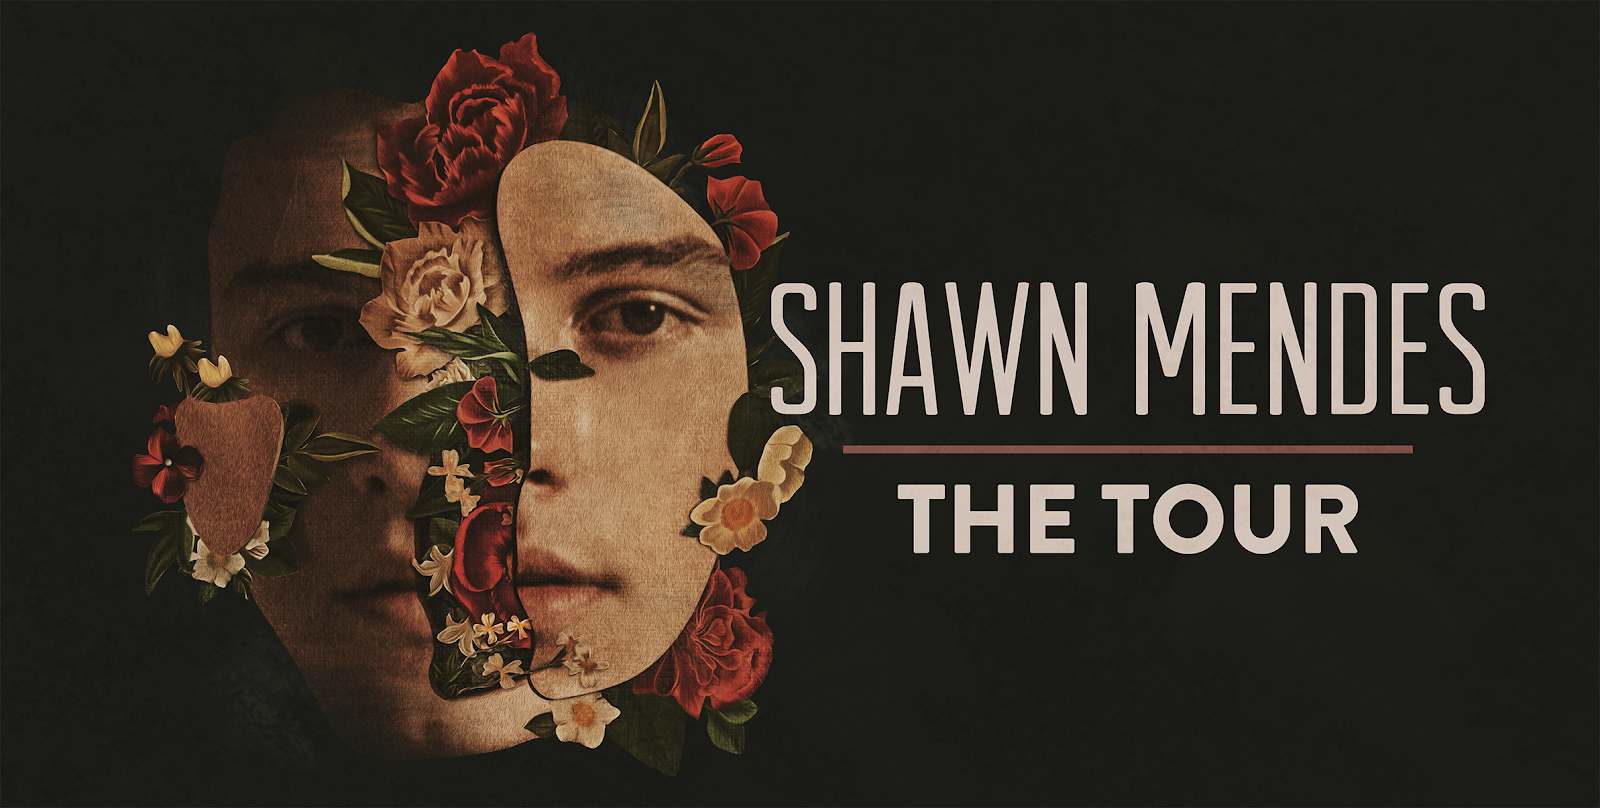 Shawn Mendes Concert in Singapore